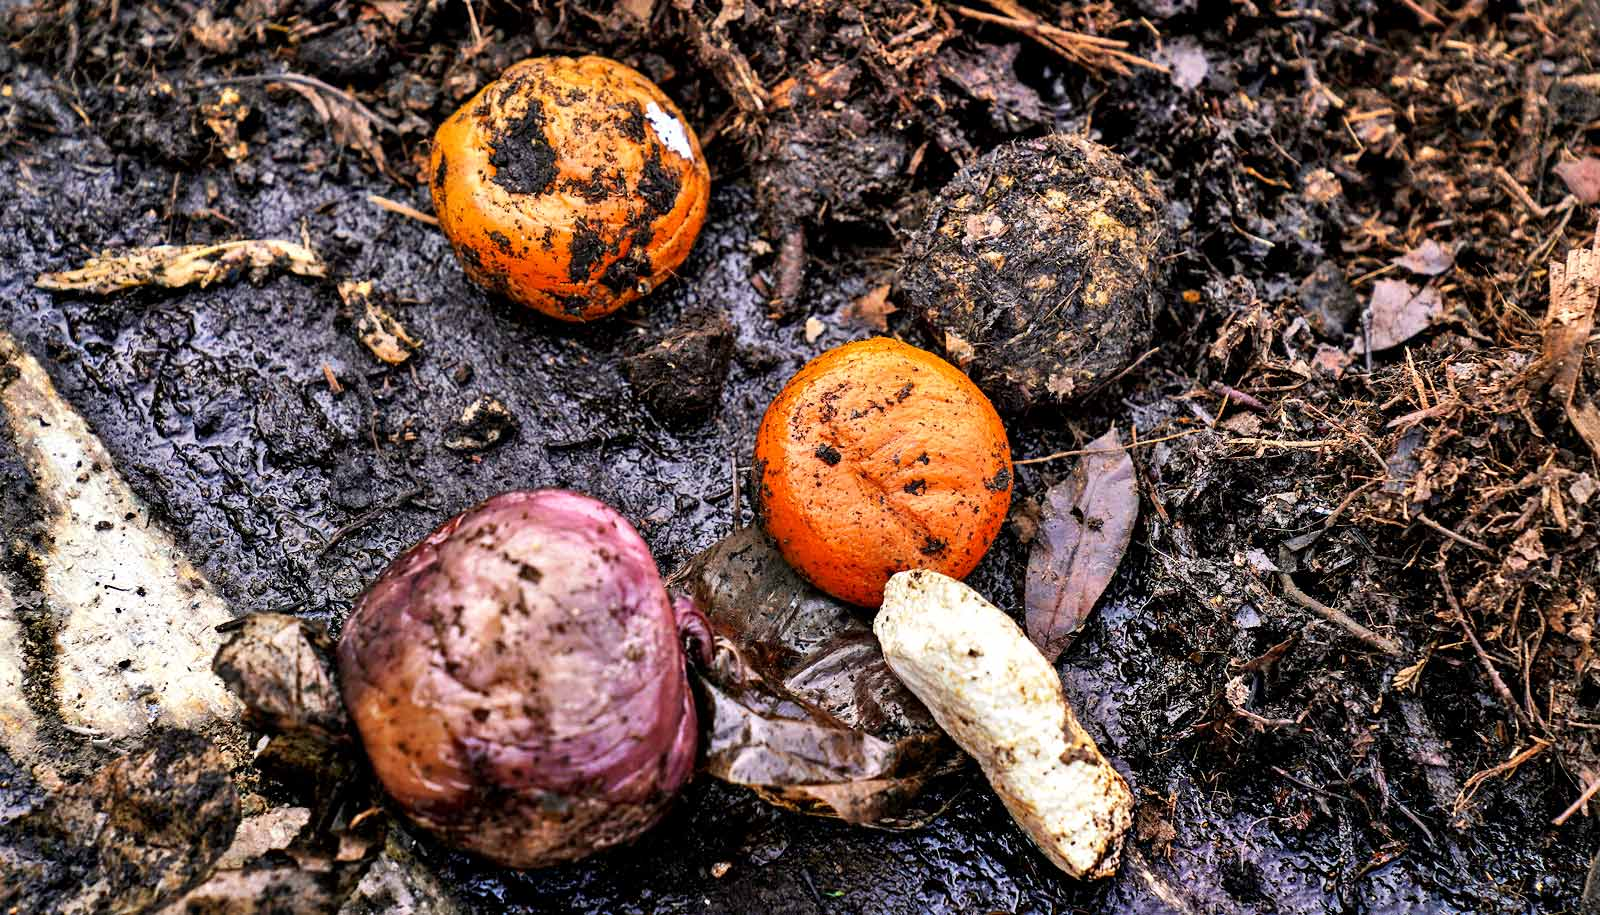 decomposing oranges and onion